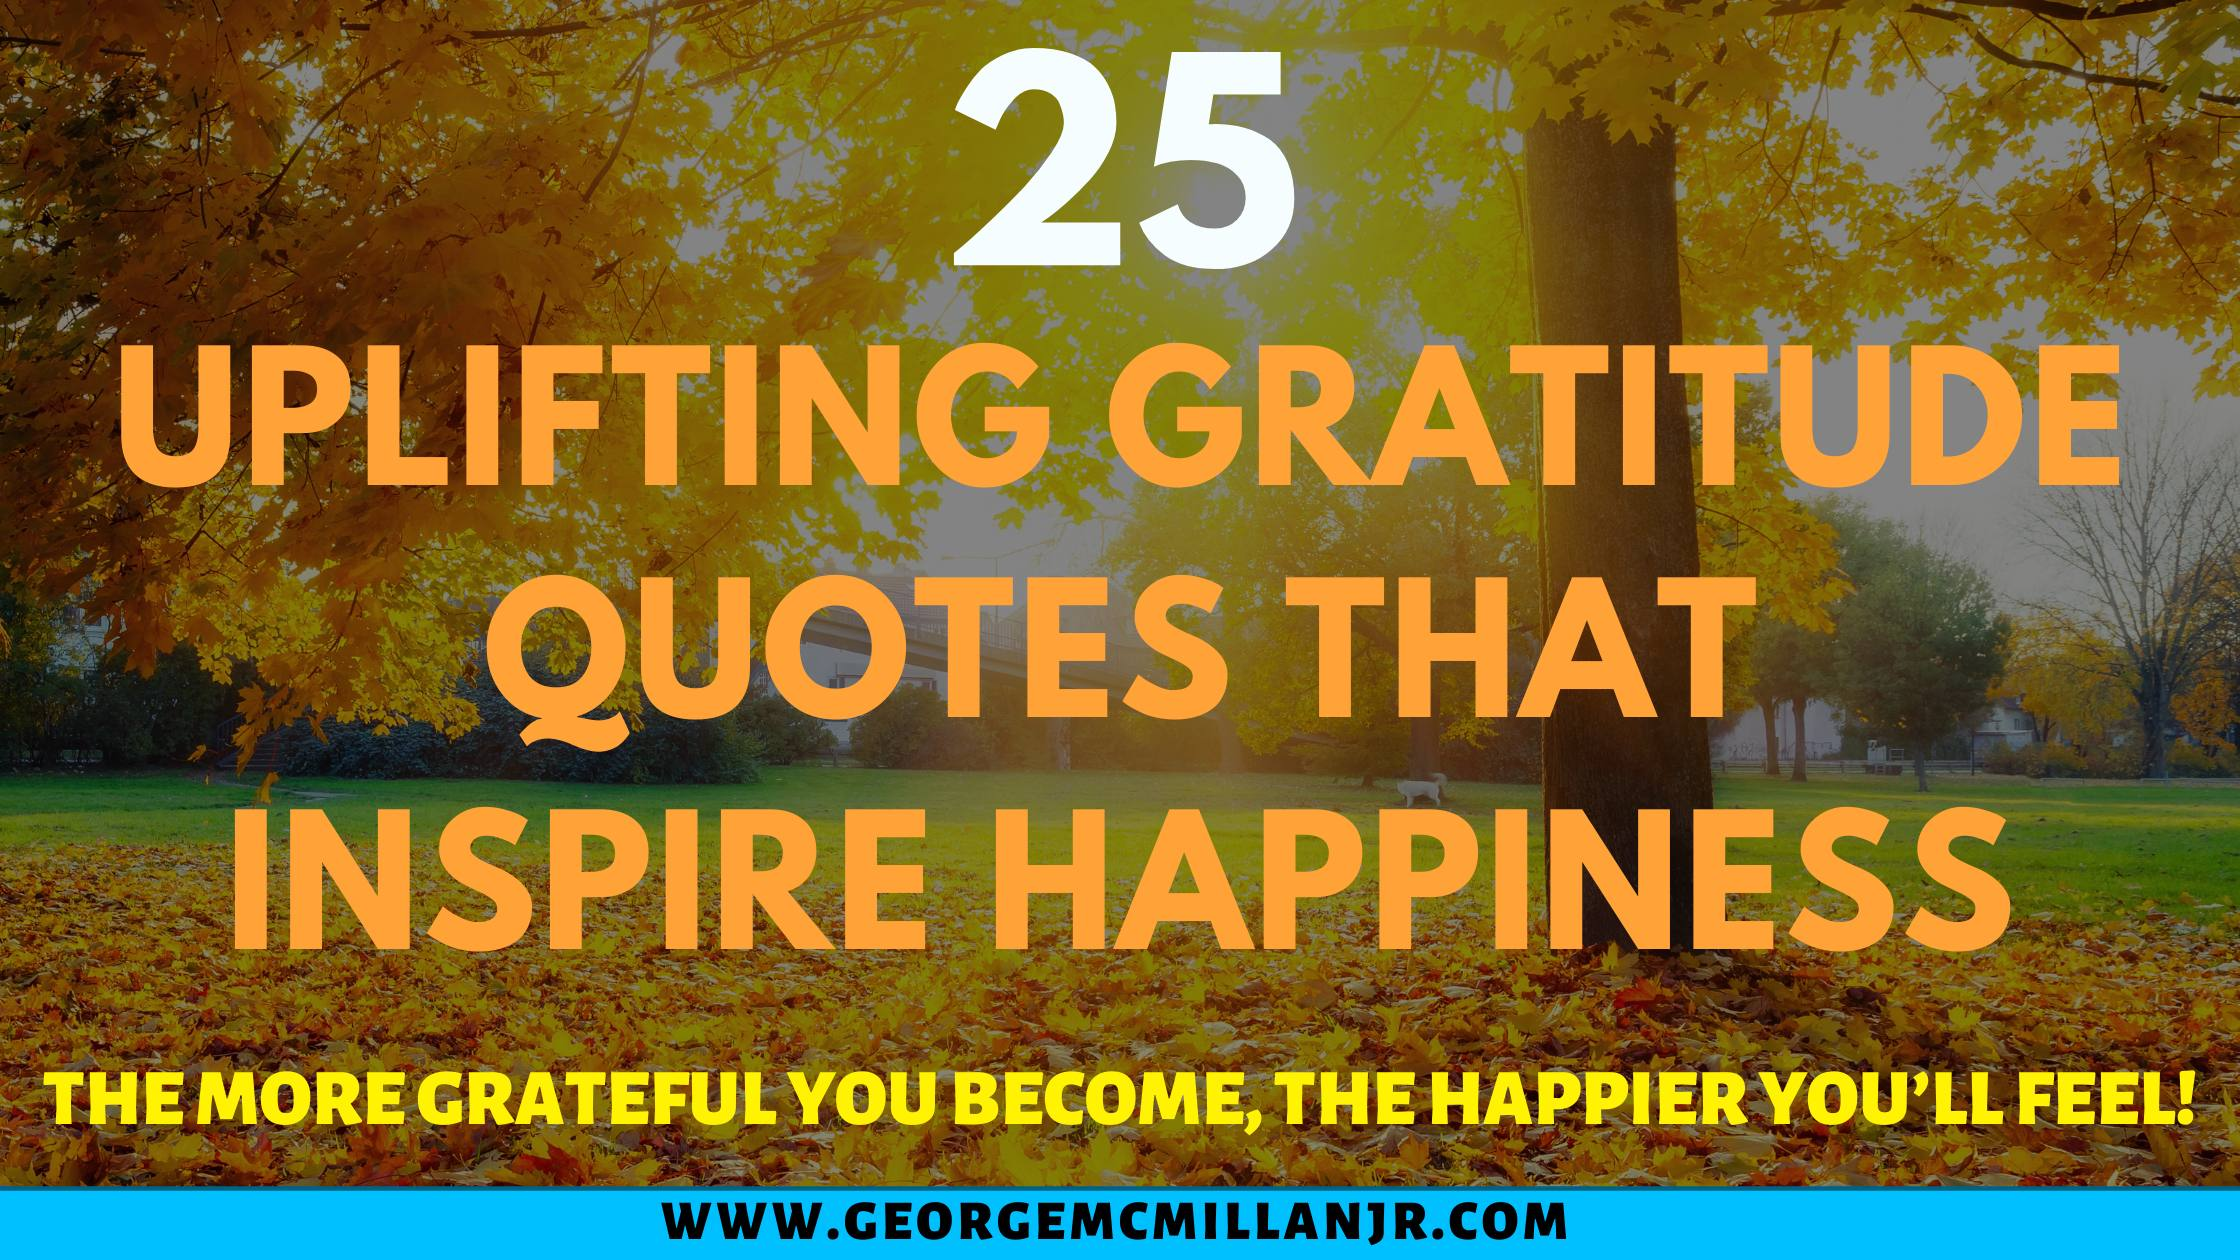 A blog post banner image of an autumn landscape at sunrise and says 25 Uplifting Gratitude Quotes that Inspire Happiness.